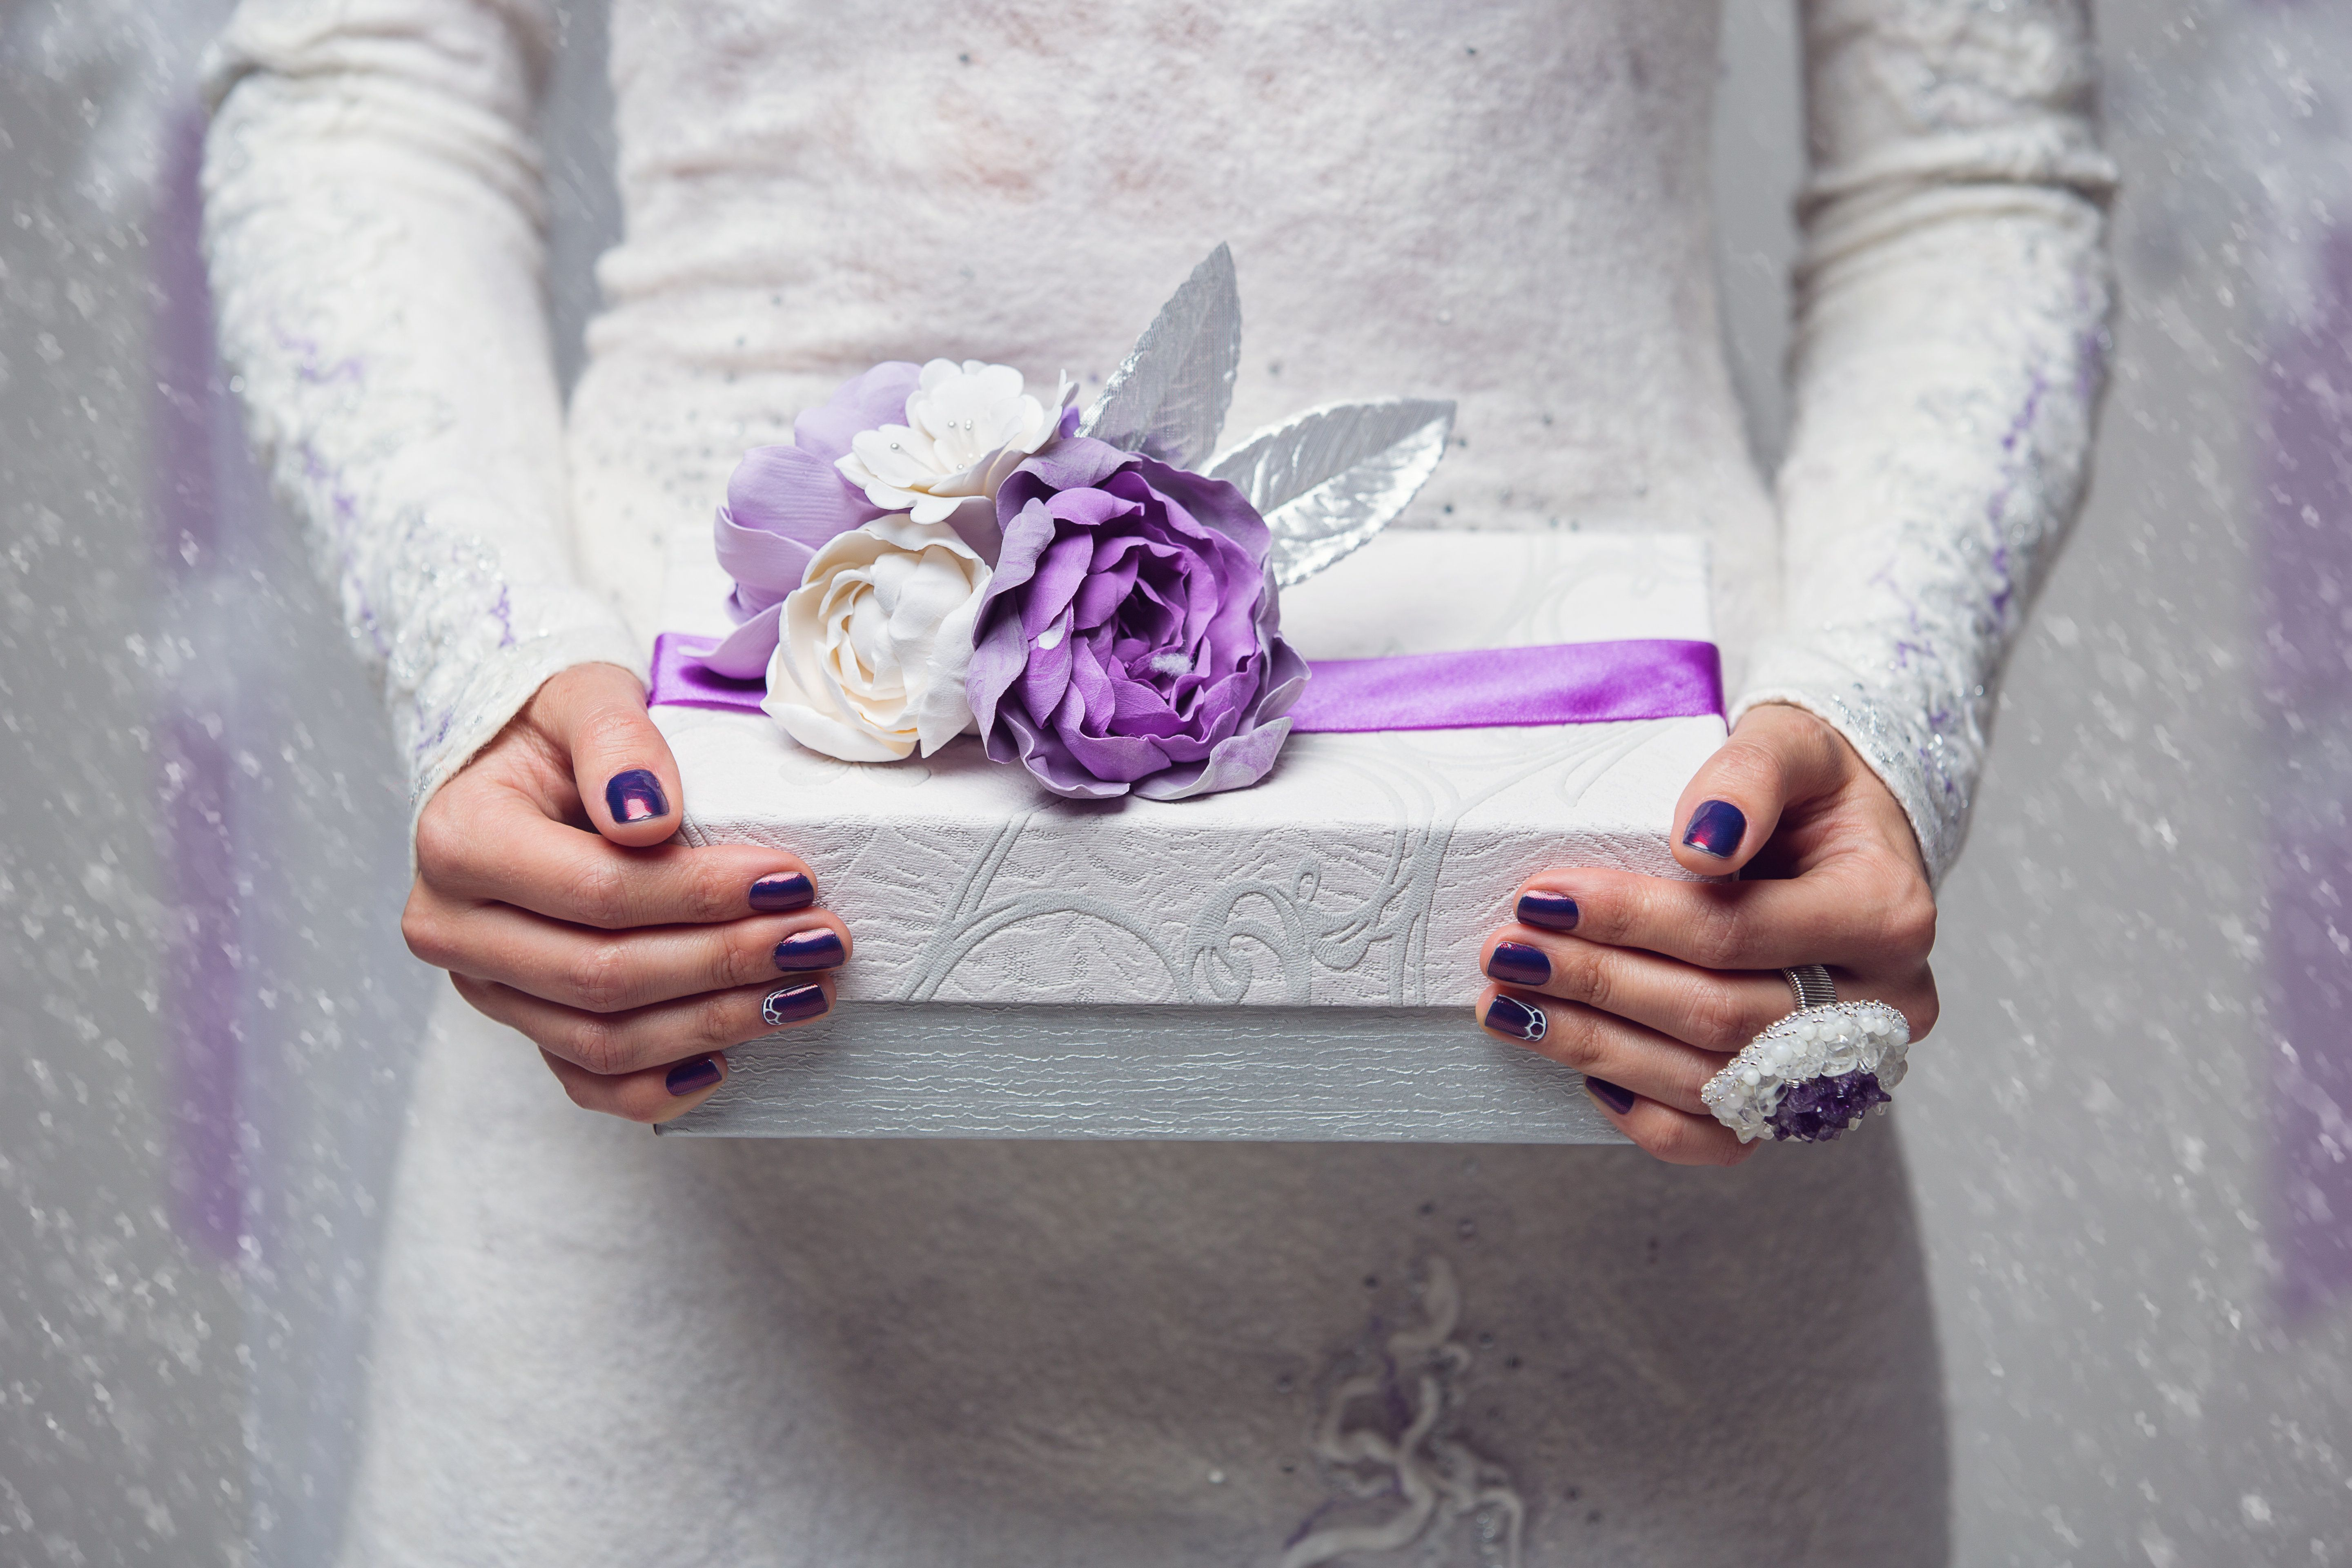 Violet present or gift box with a flowers and a lilac ribbon